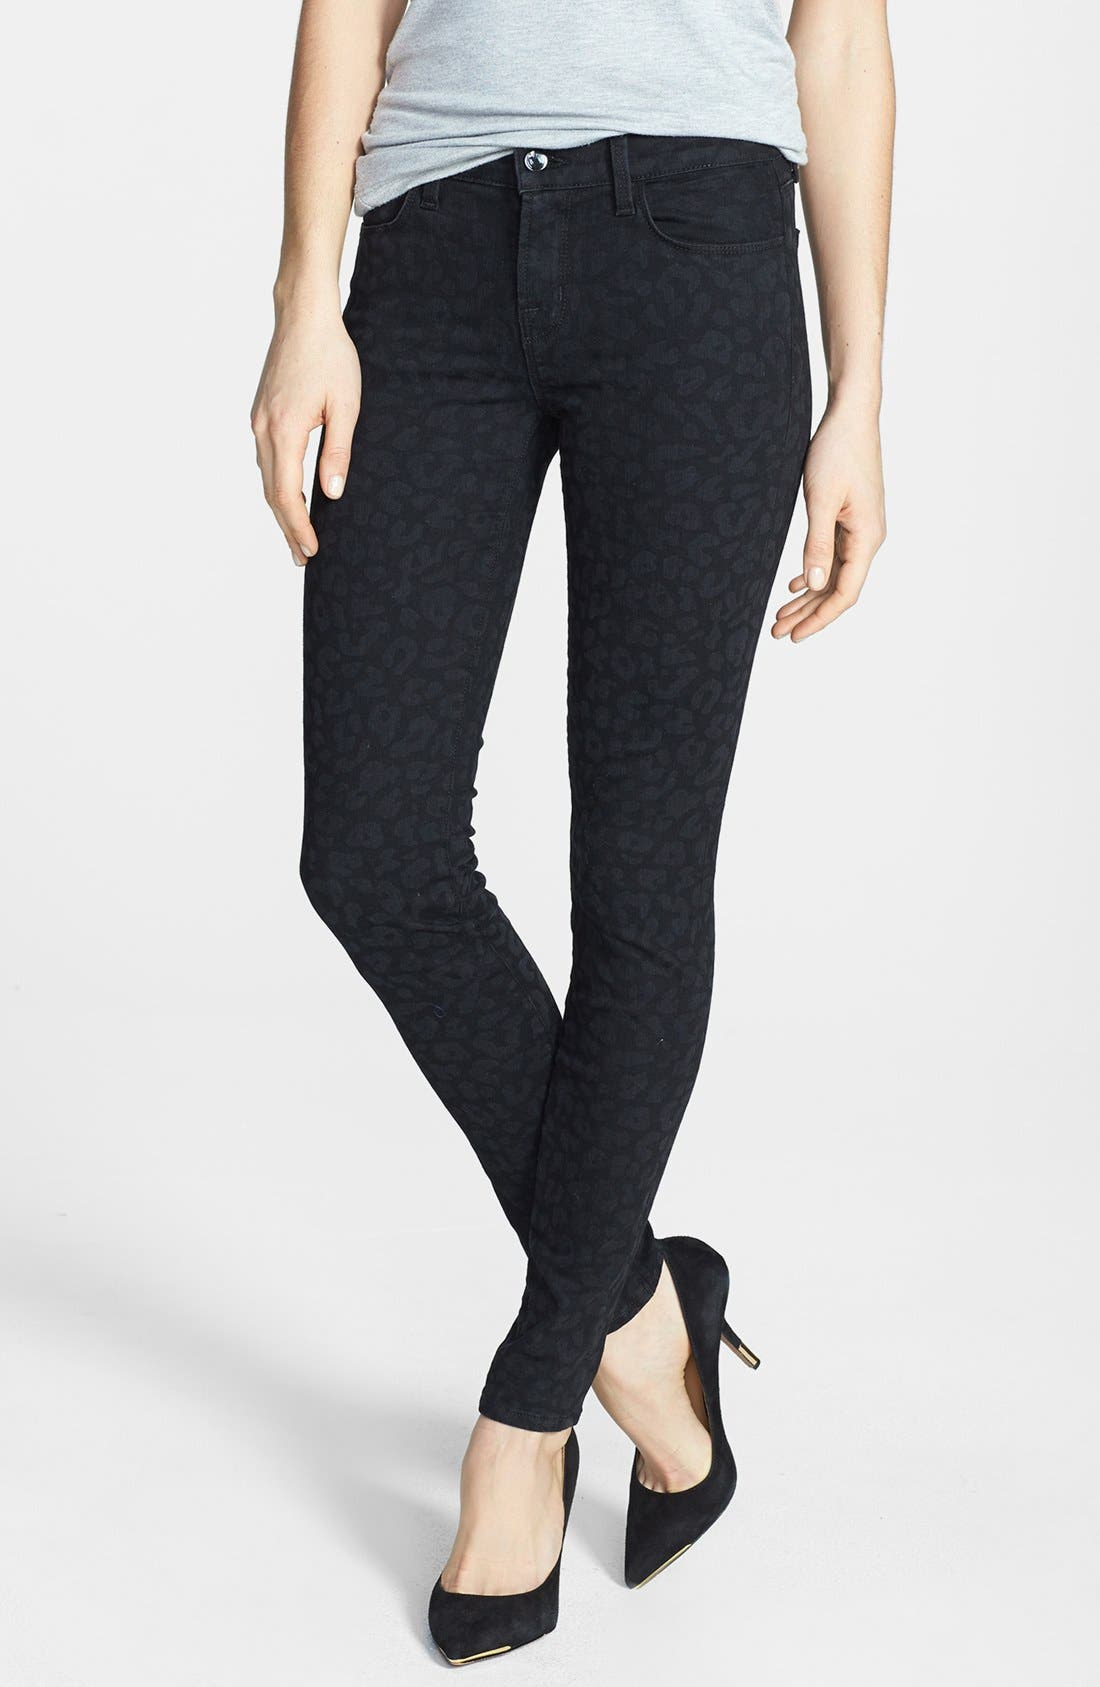 '620' Mid Rise Skinny Jeans, Main, color, 002